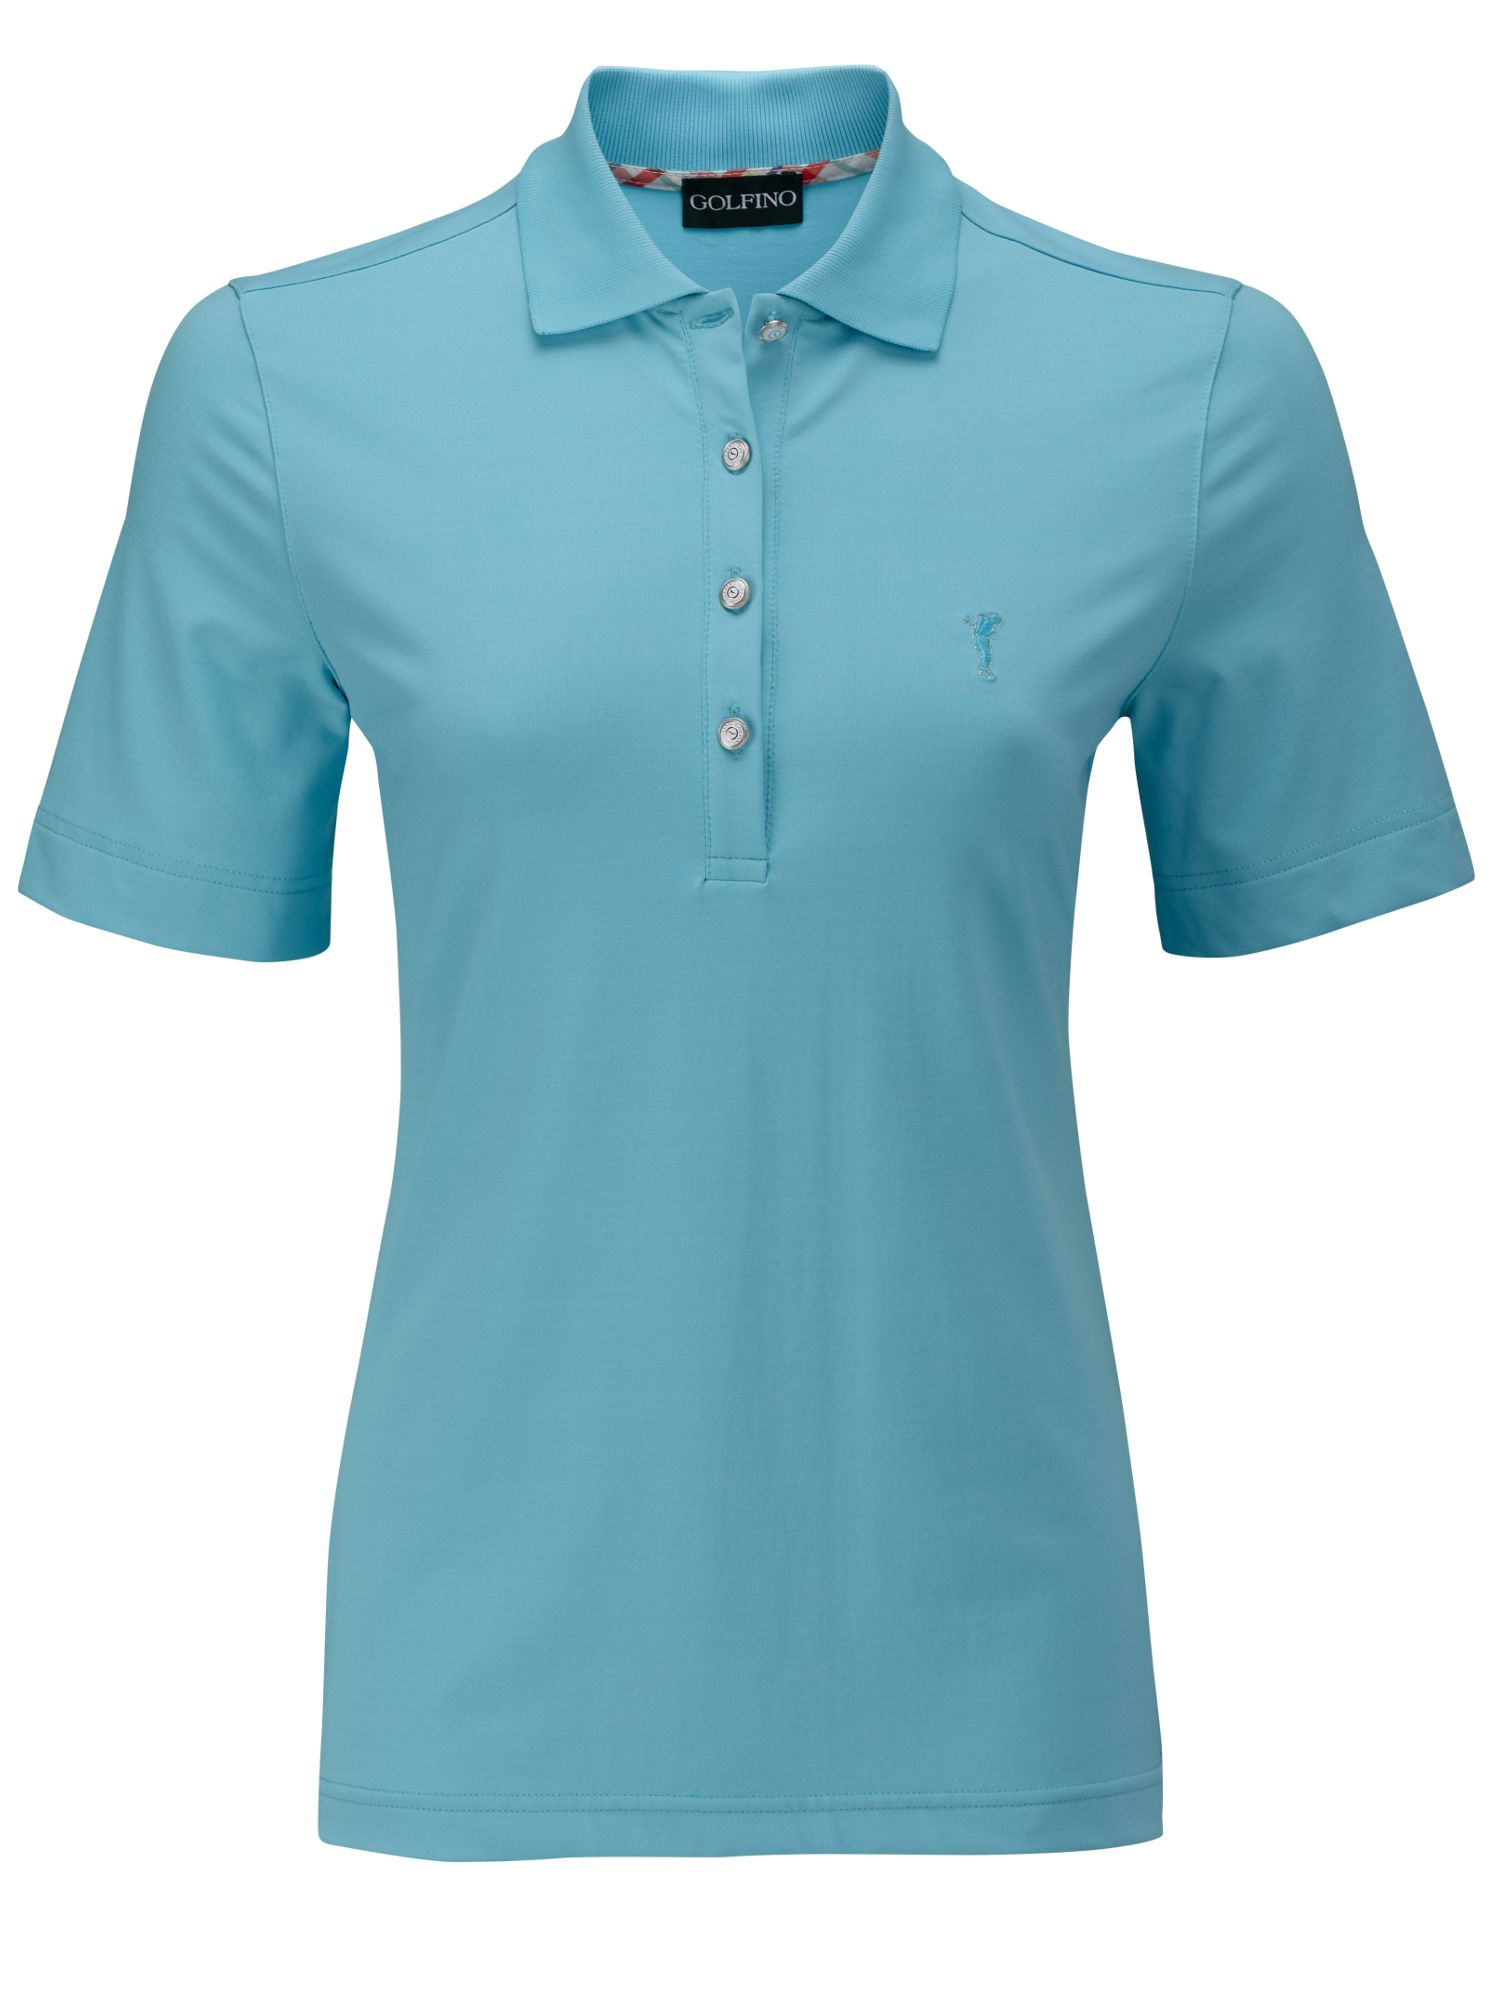 Dry comfort jersey polo